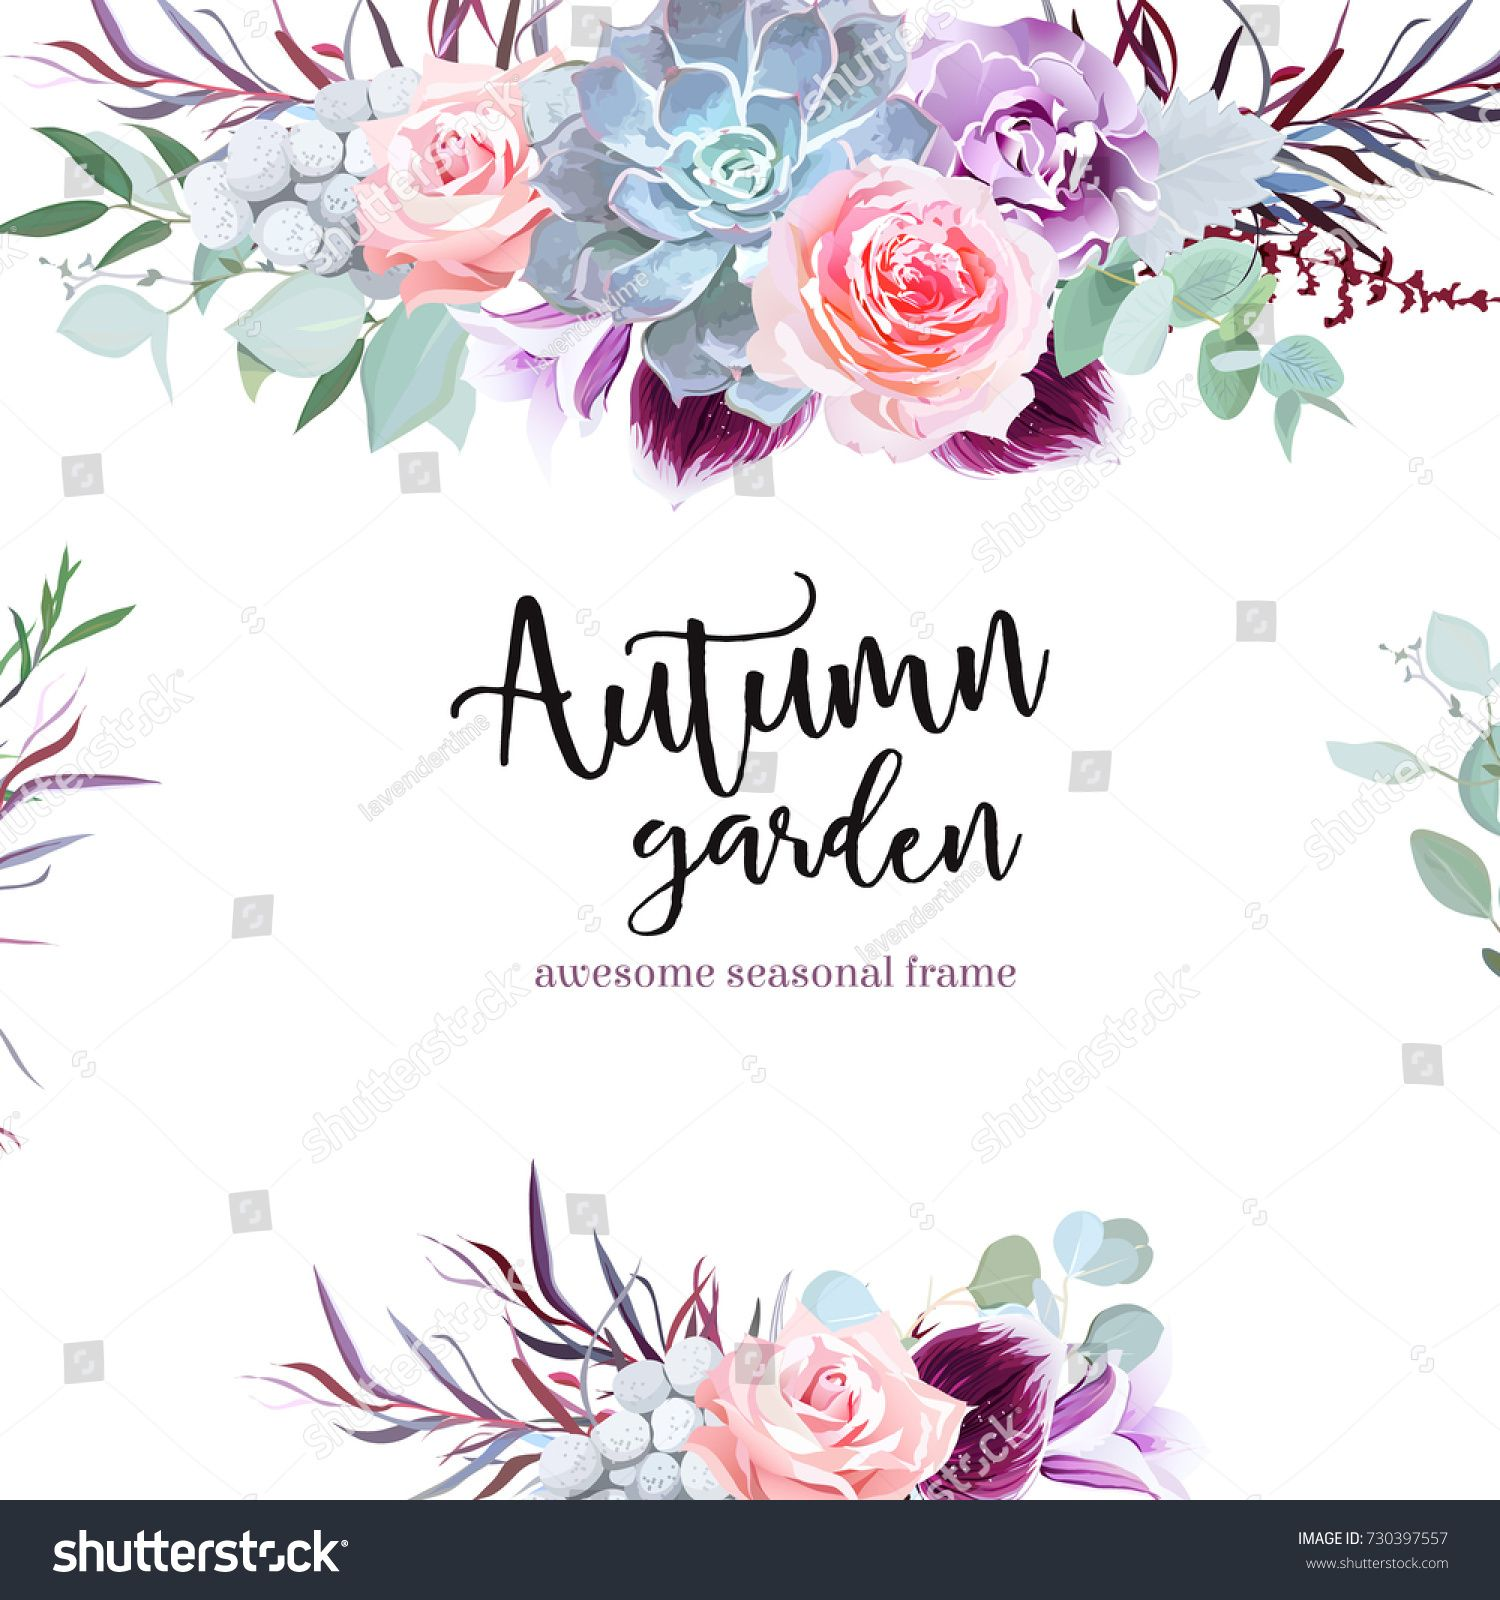 4715610135652 Stylish plum colored and pink flowers vector design card. Rose, purple  carnation, bell flower, succulent, eucalyptus, agonis, brunia. Floral  borders.